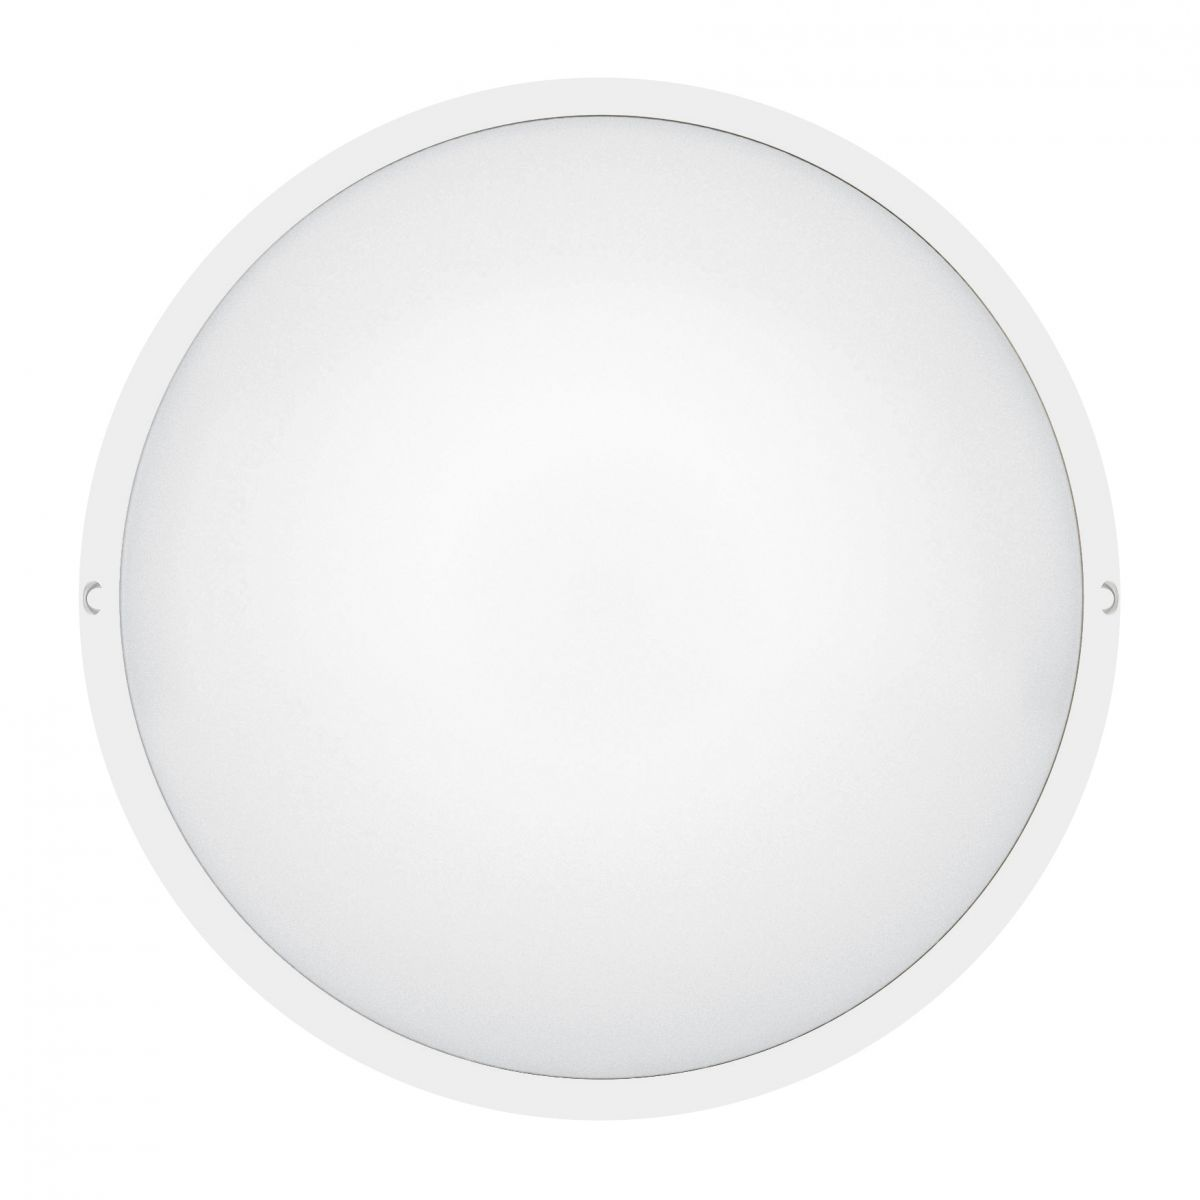 SL - Astreo LED 800lm Detectie HF 330mm ST wit